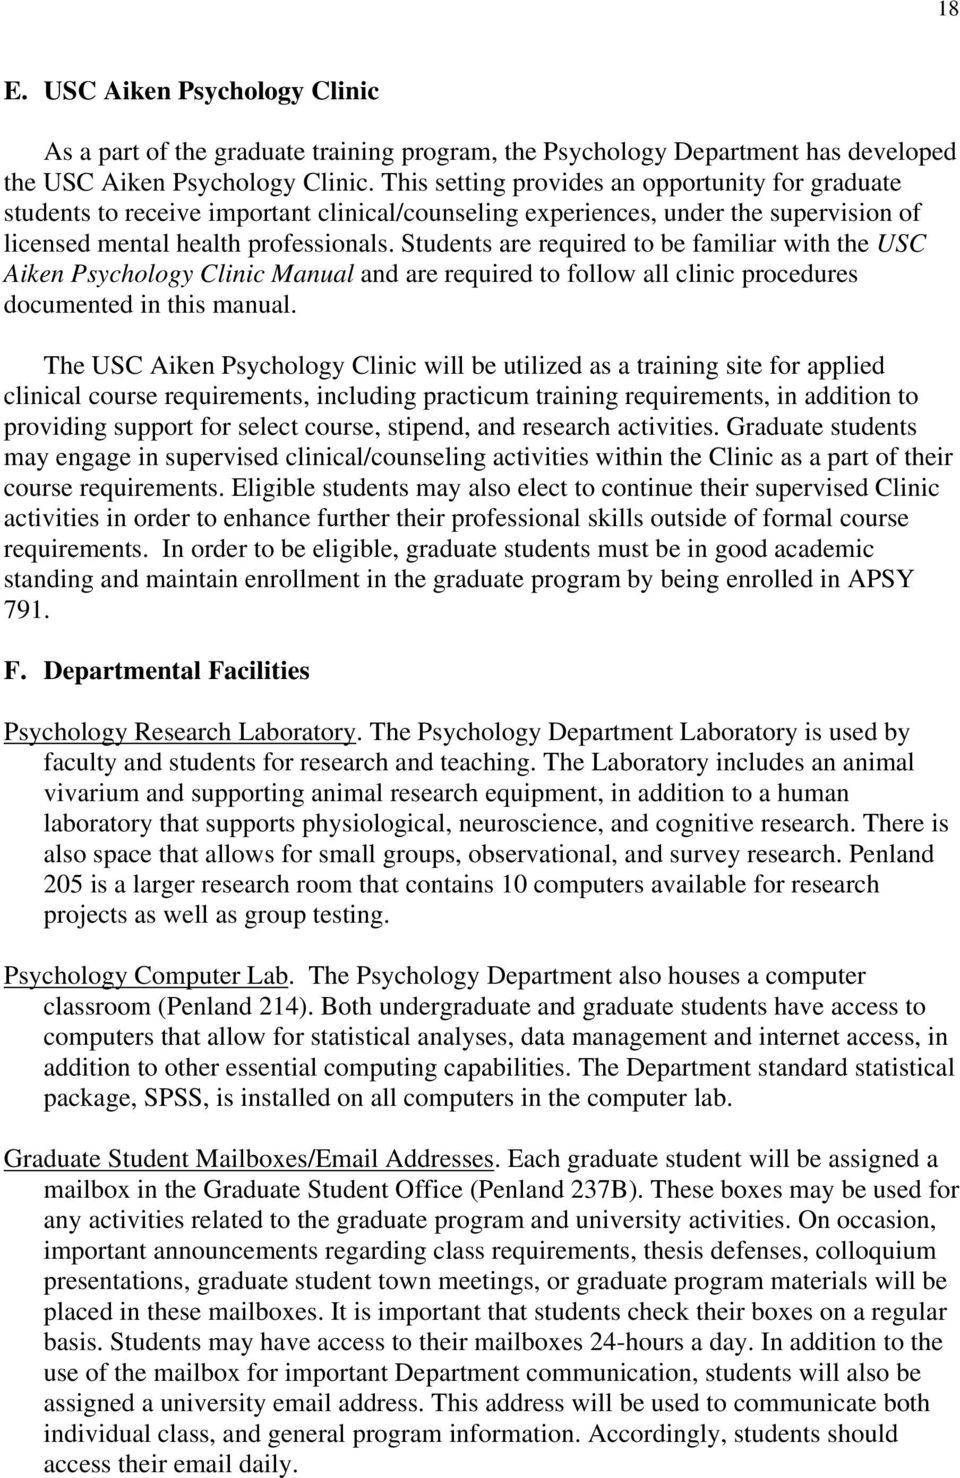 Students are required to be familiar with the USC Aiken Psychology Clinic Manual and are required to follow all clinic procedures documented in this manual.